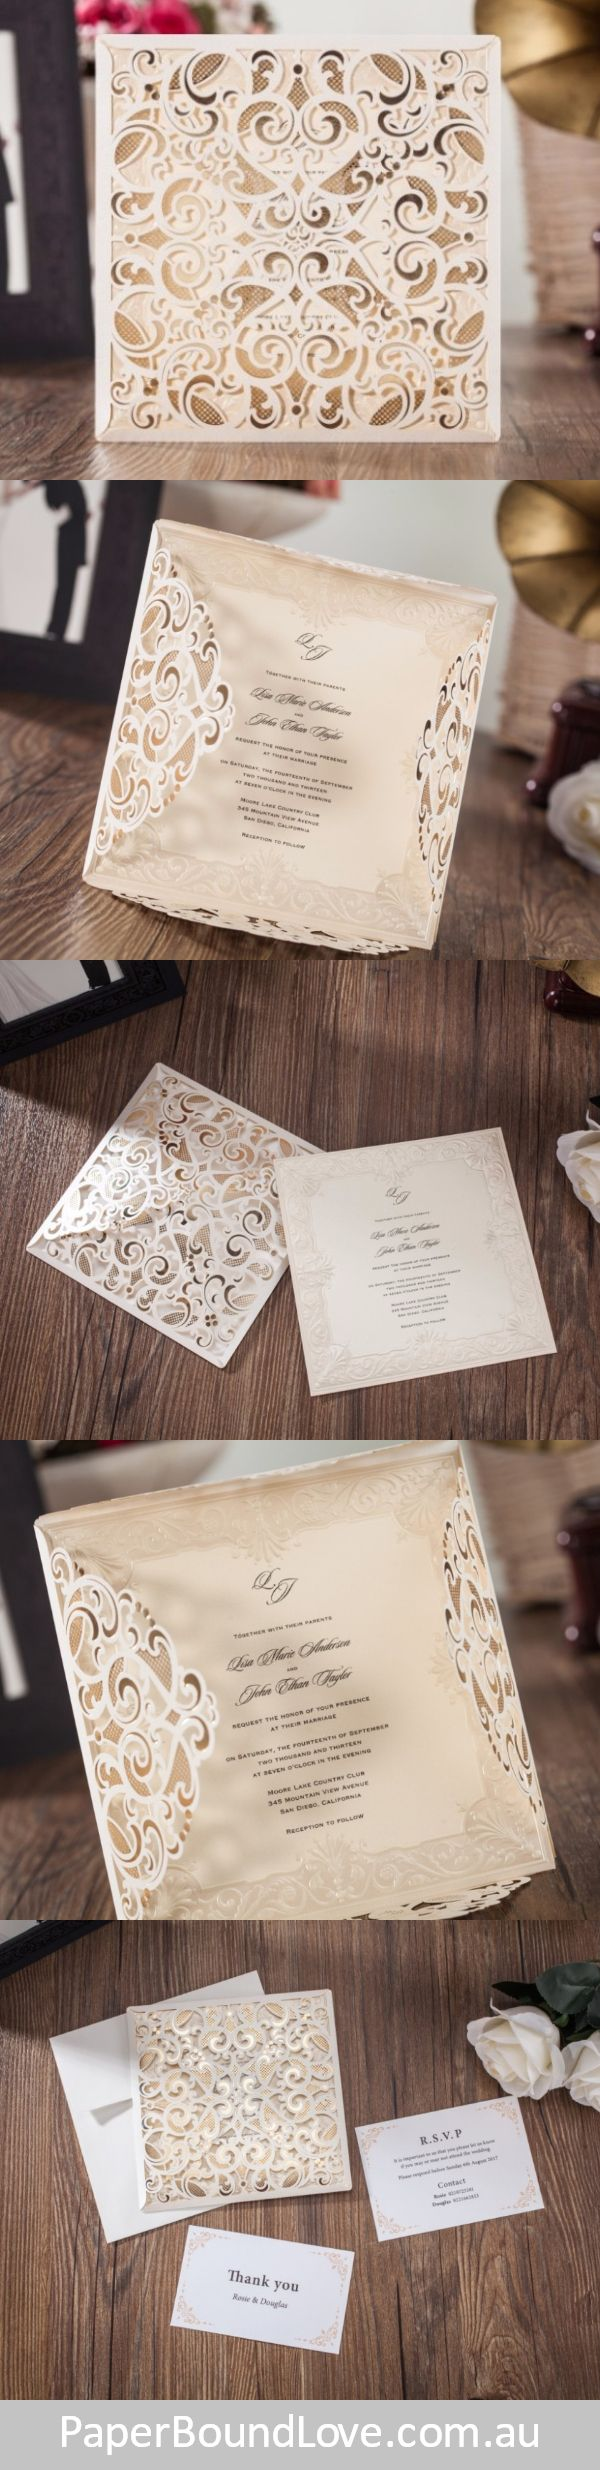 muslim wedding card invitation quotes%0A Regal wedding invitations by Paper Bound Love